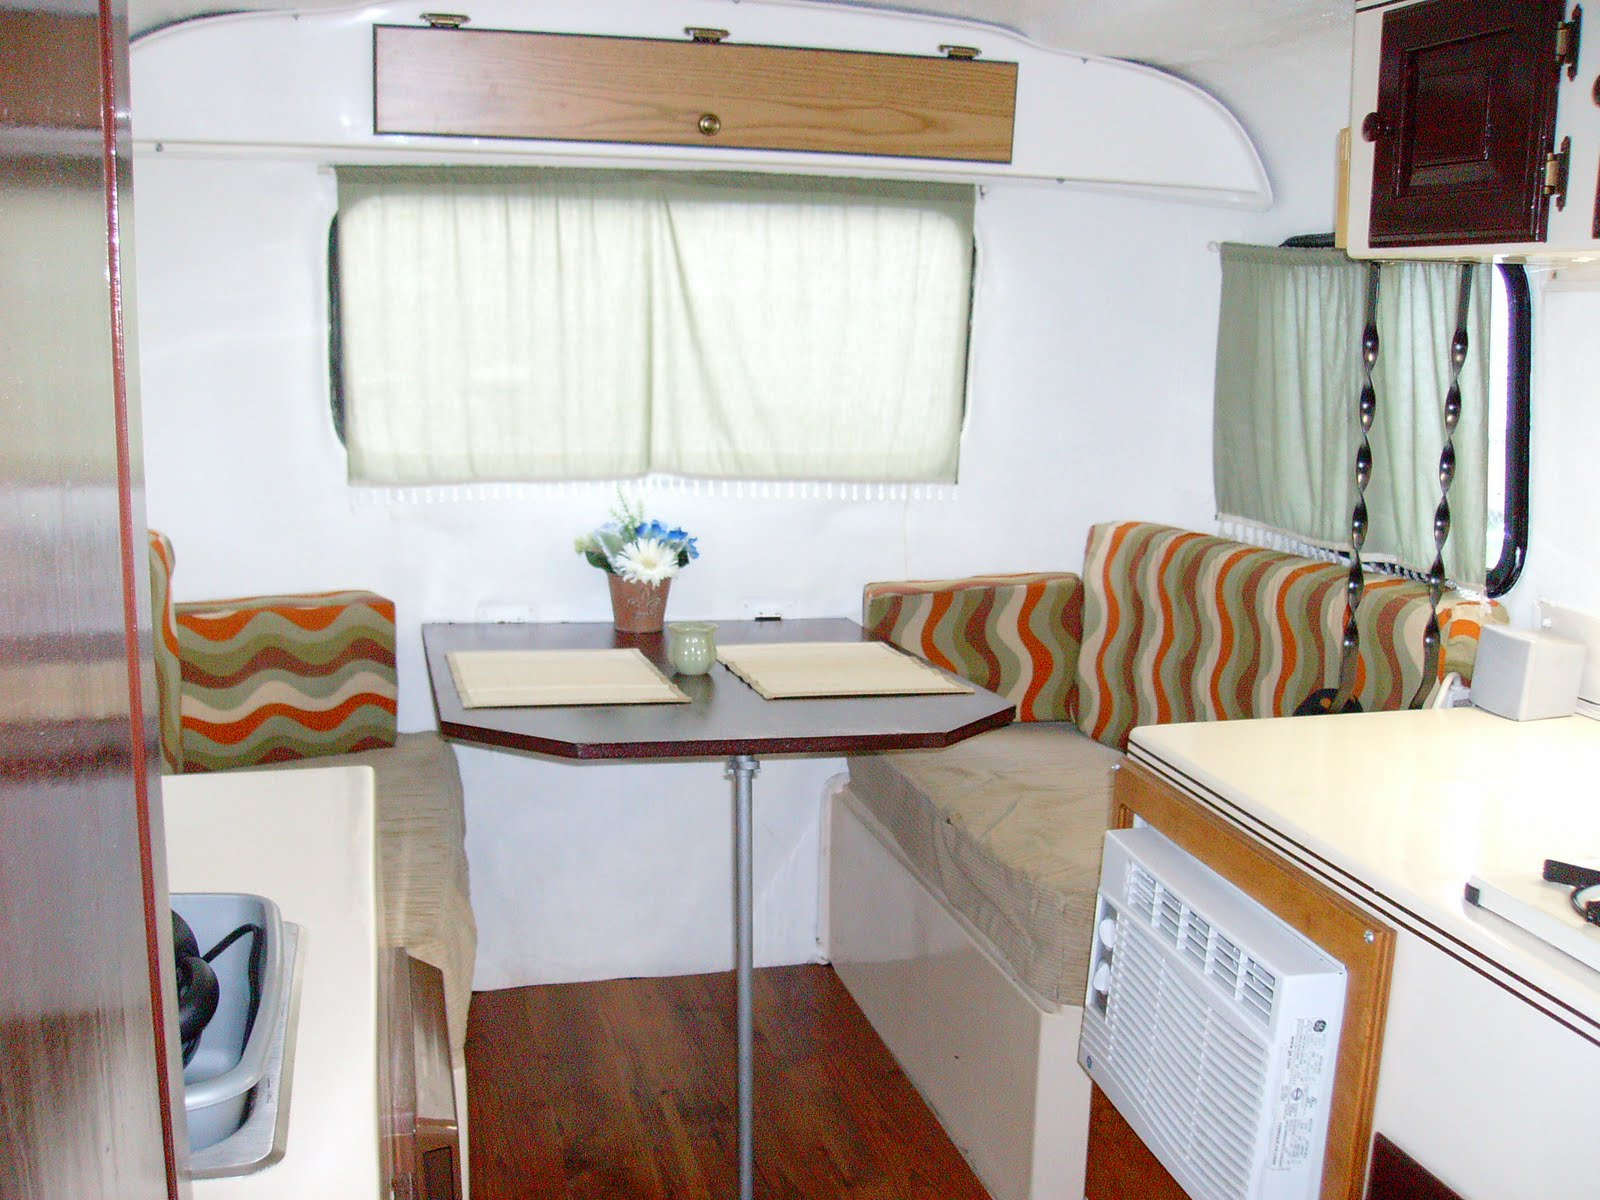 Watching Airplanes: Camper Remodel